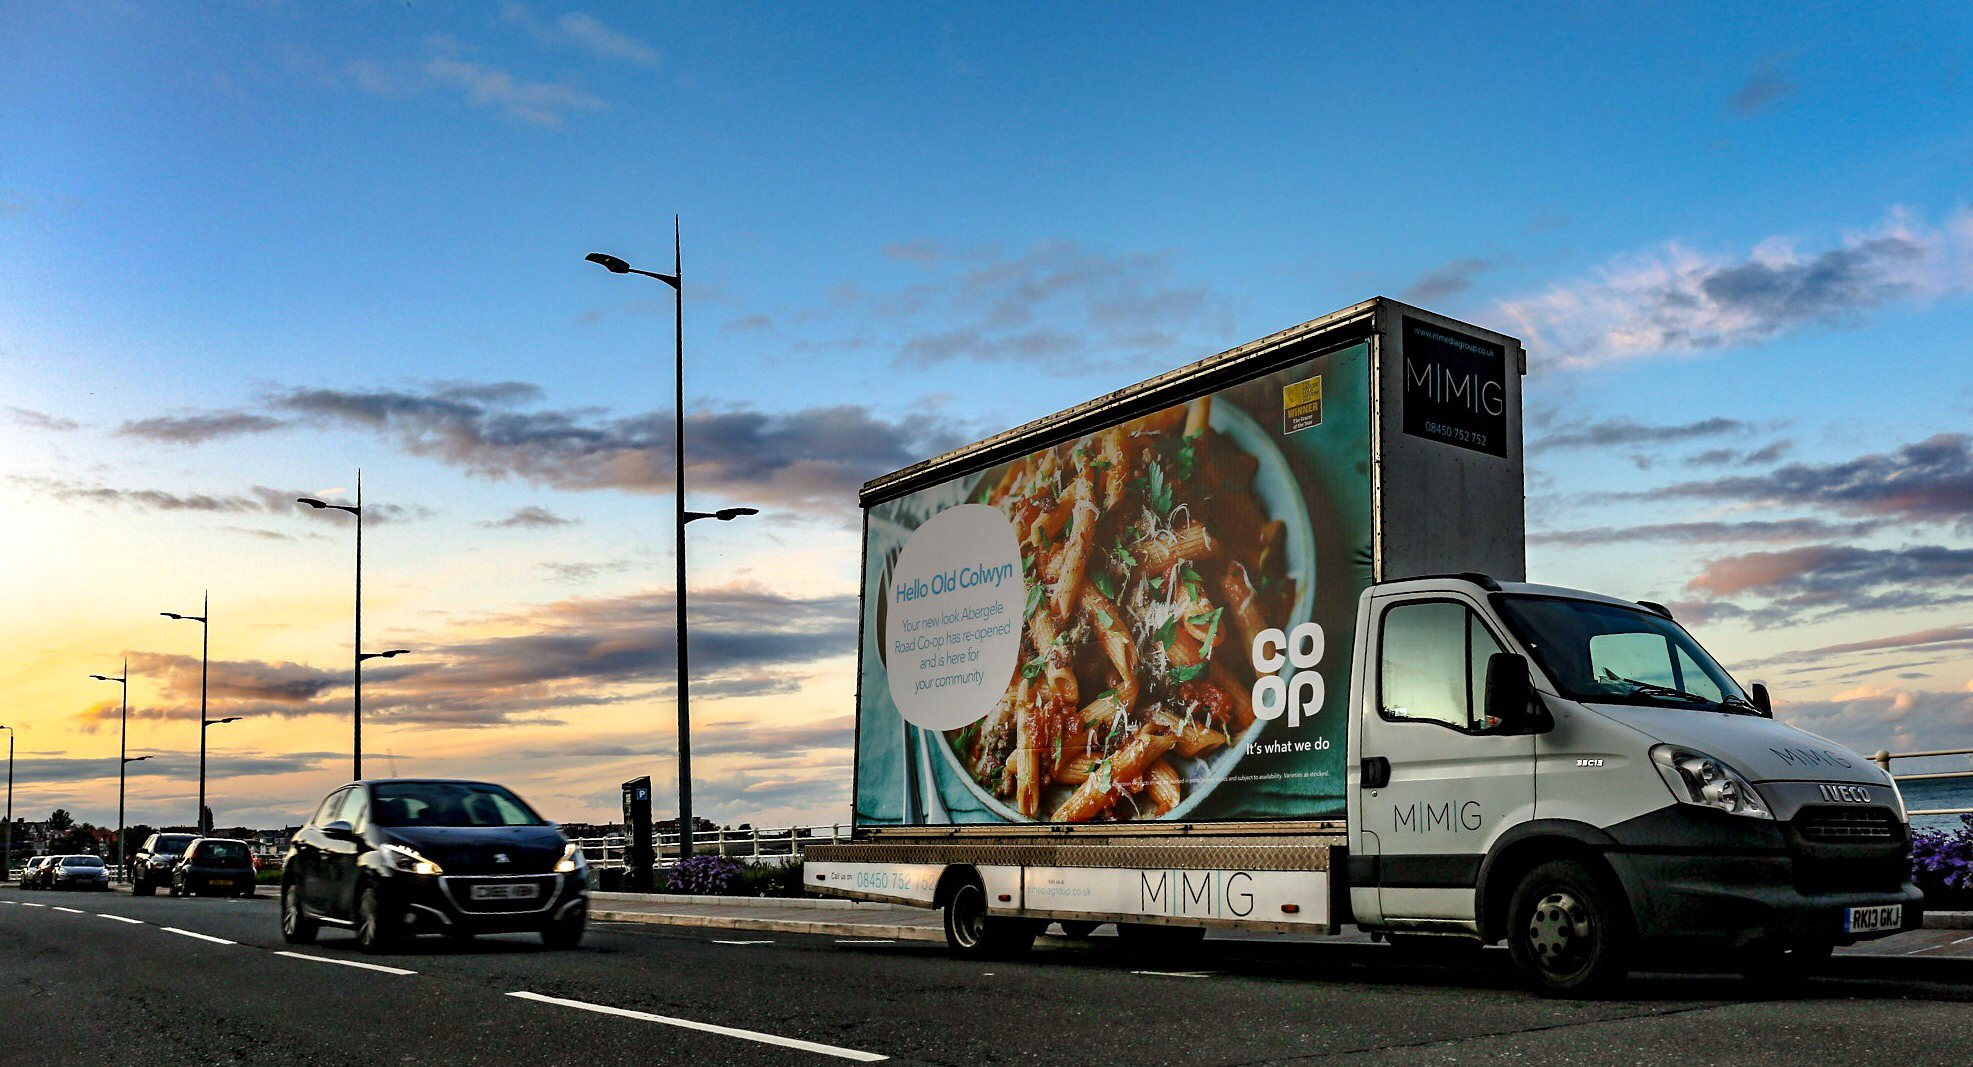 Co-Op Advert Van Campaign